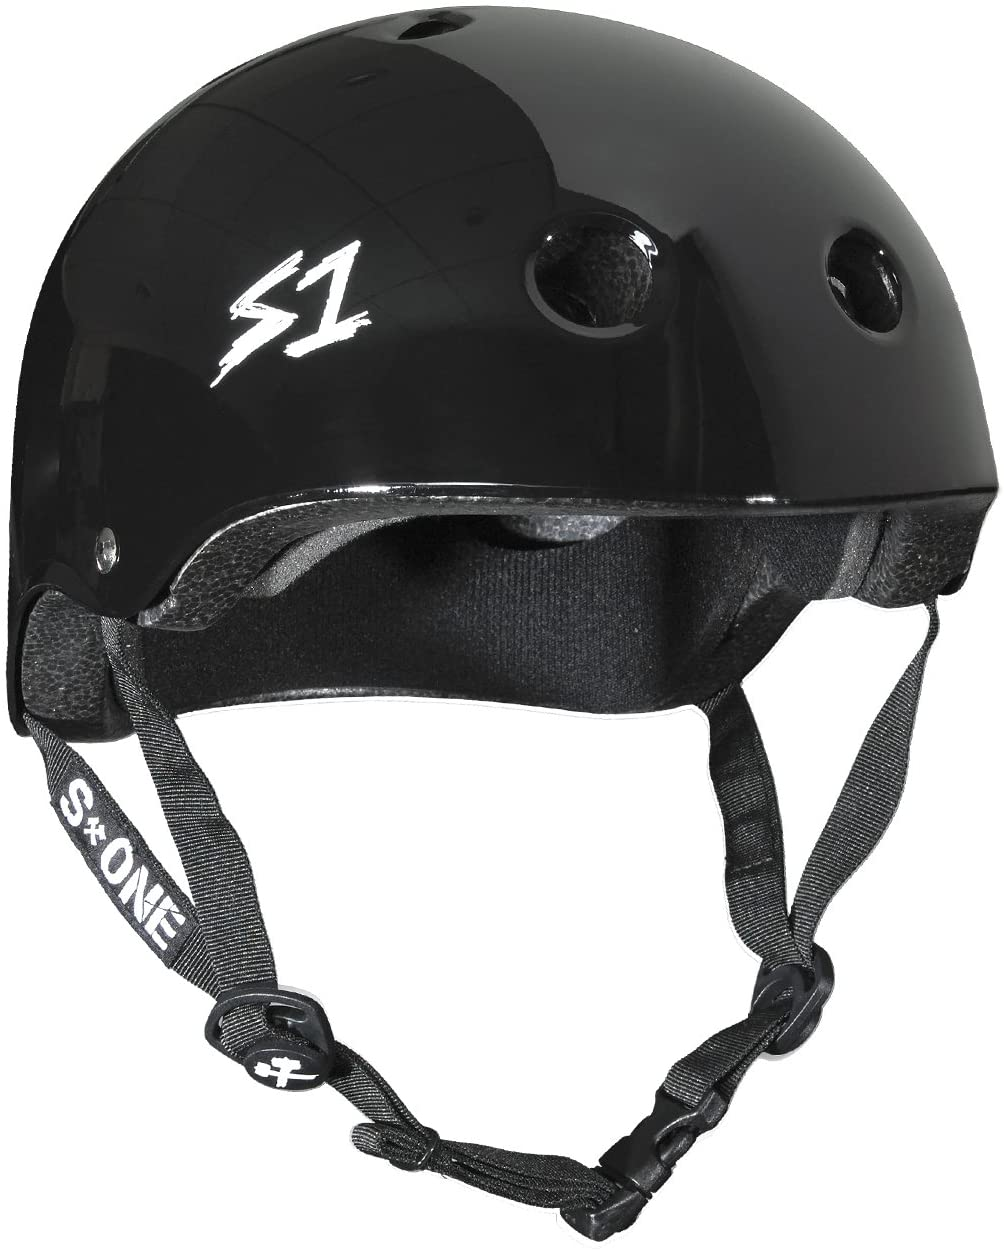 S-ONE Lifer CPSC - Multi-Impact Helmet - Black Gloss Large (22